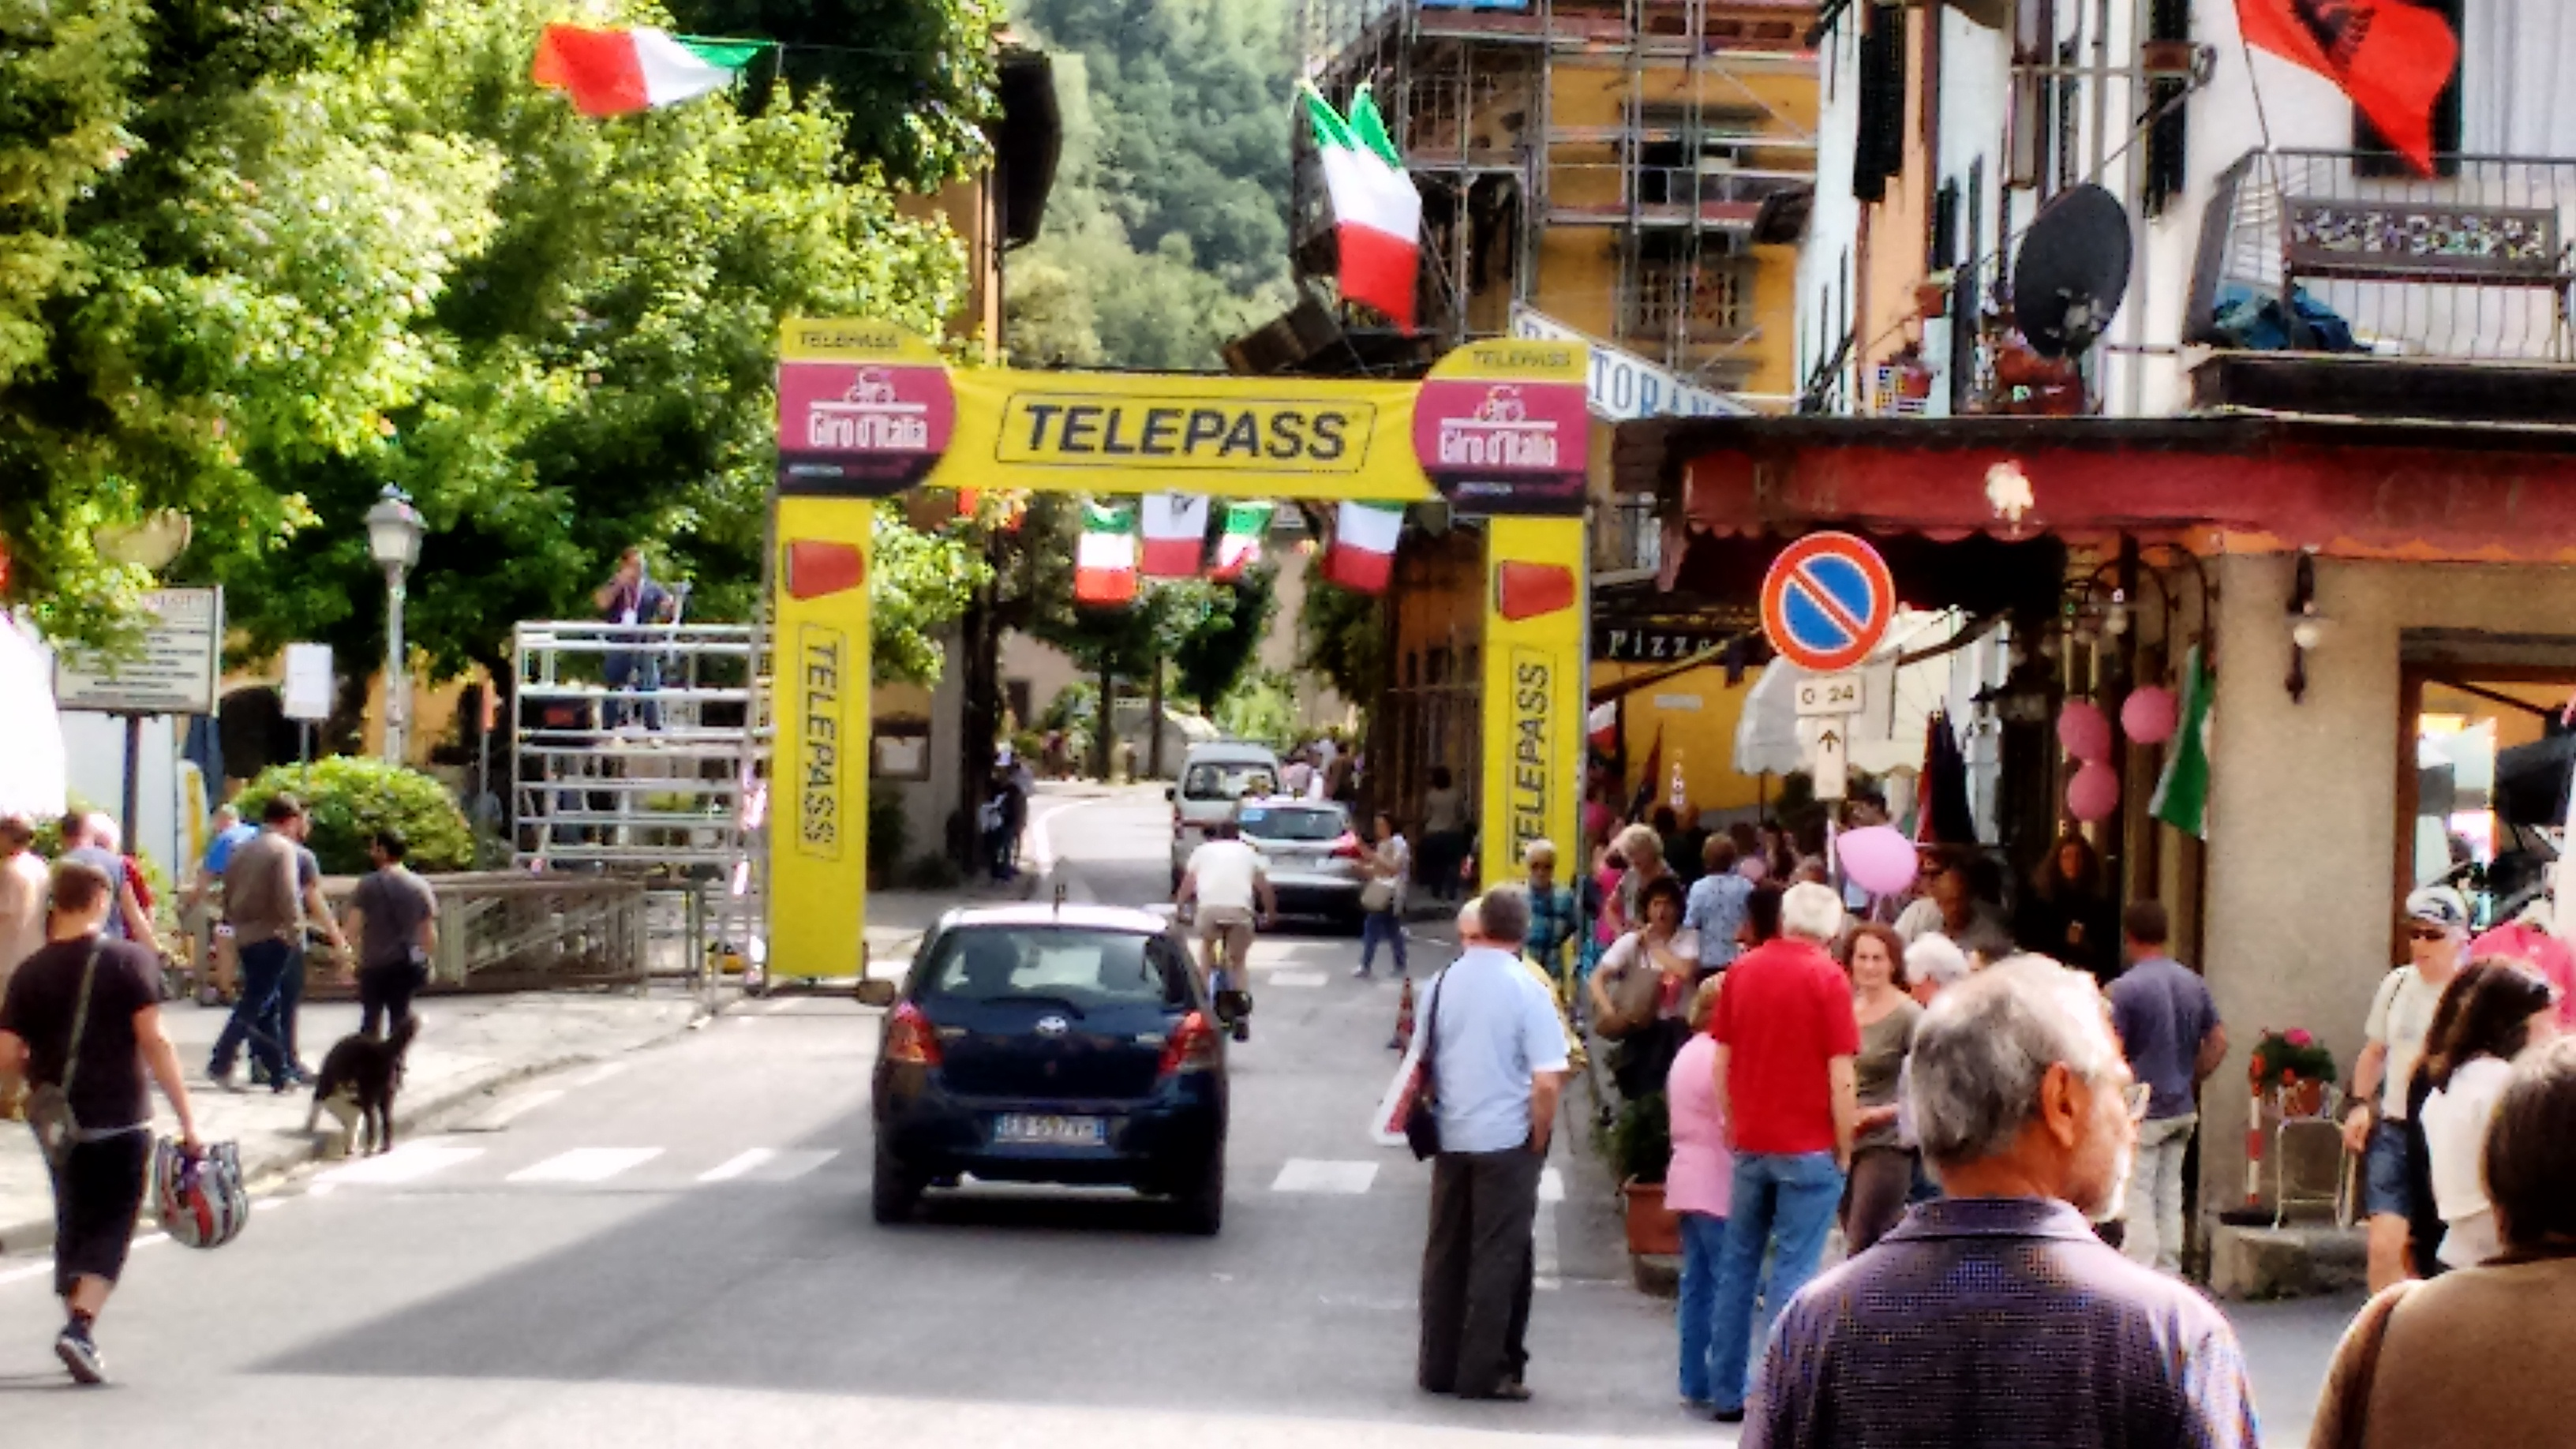 A Day at the Giro d'Italia